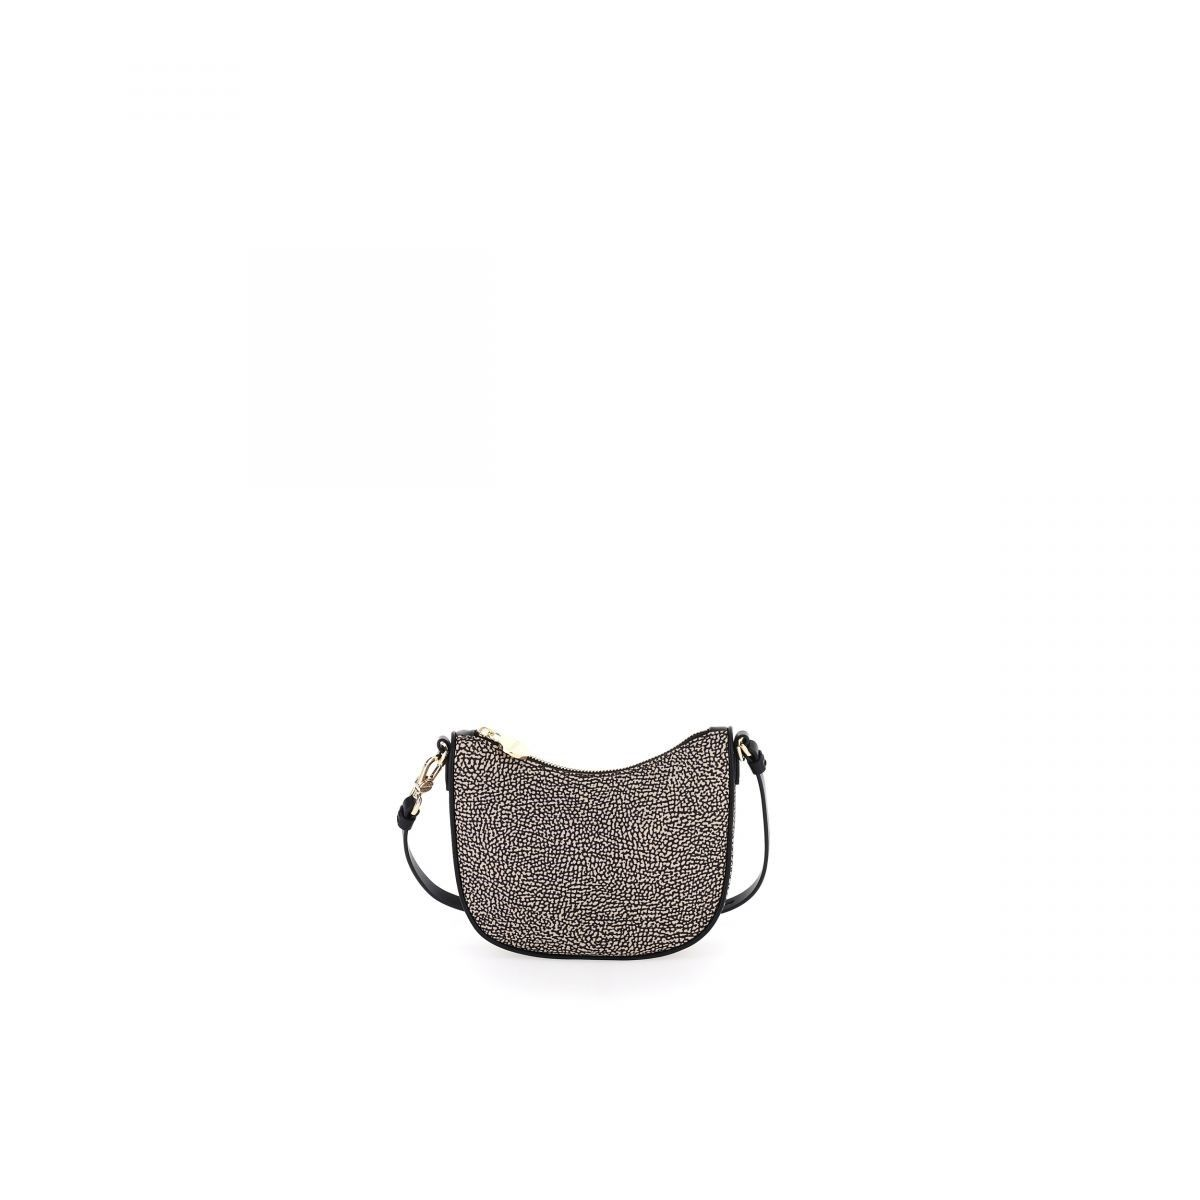 Borbonese BORBONESE WOMEN'S BROWN POLYESTER SHOULDER BAG